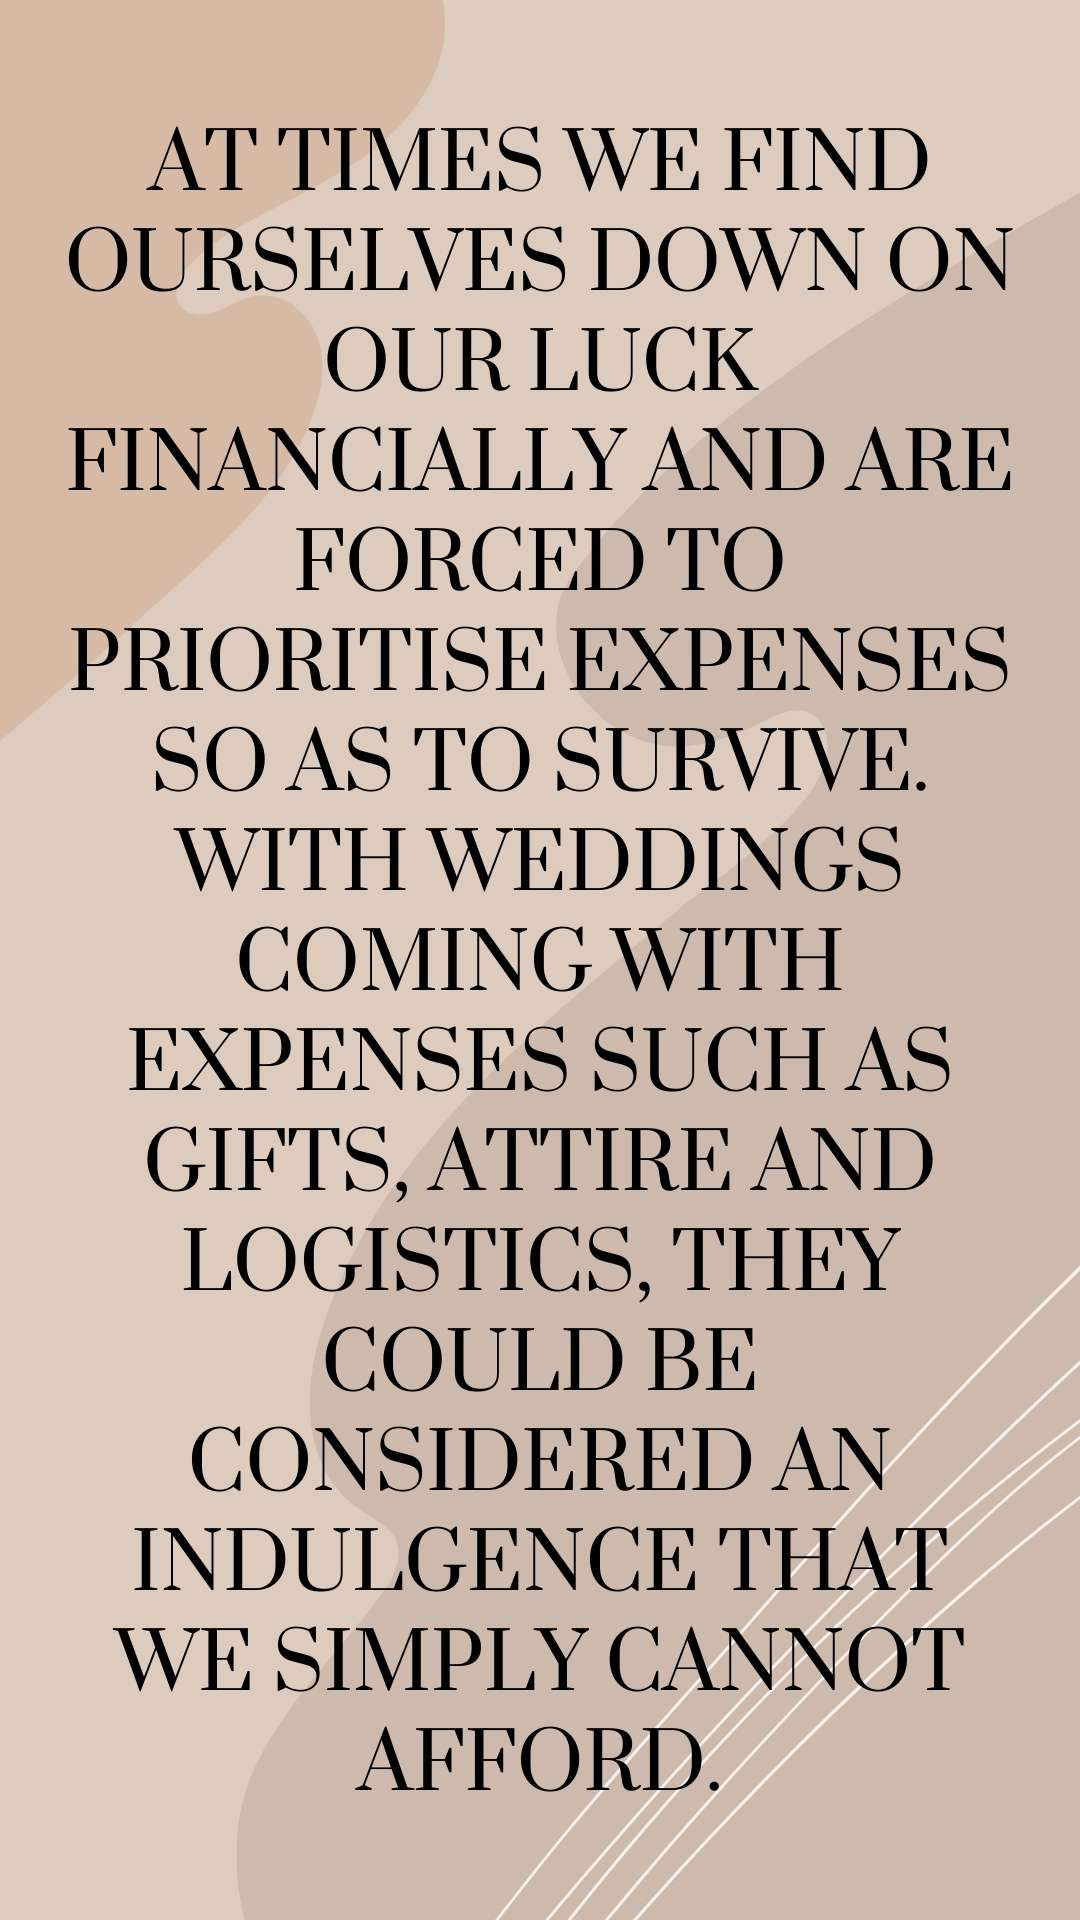 At times we find ourselves down on our luck financially and are forced to prioritise expenses so as to survive. With weddings coming with expenses such as gifts, attire and logistics, they could be considered an indulgence that we simply cannot afford.